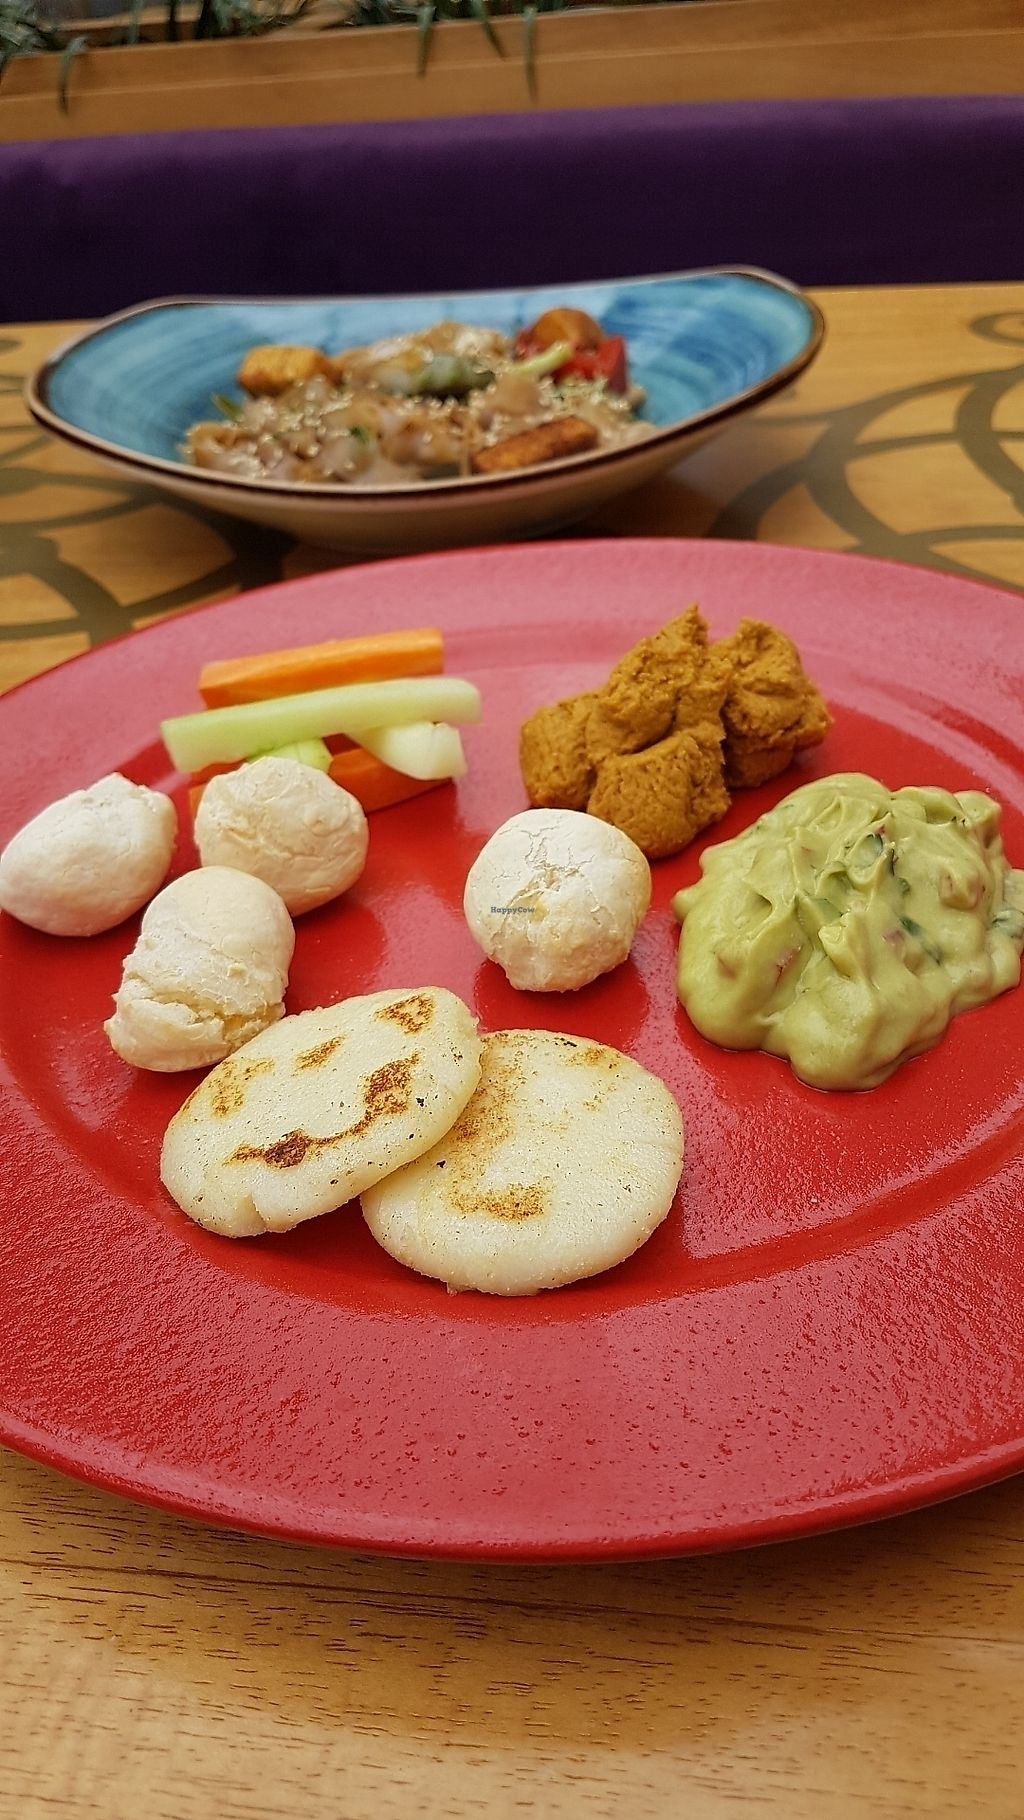 """Photo of Veda Restaurante  by <a href=""""/members/profile/unabashed"""">unabashed</a> <br/>appetizer (hummus, guac, veggies, awesome GF bread) <br/> August 29, 2017  - <a href='/contact/abuse/image/95473/298727'>Report</a>"""